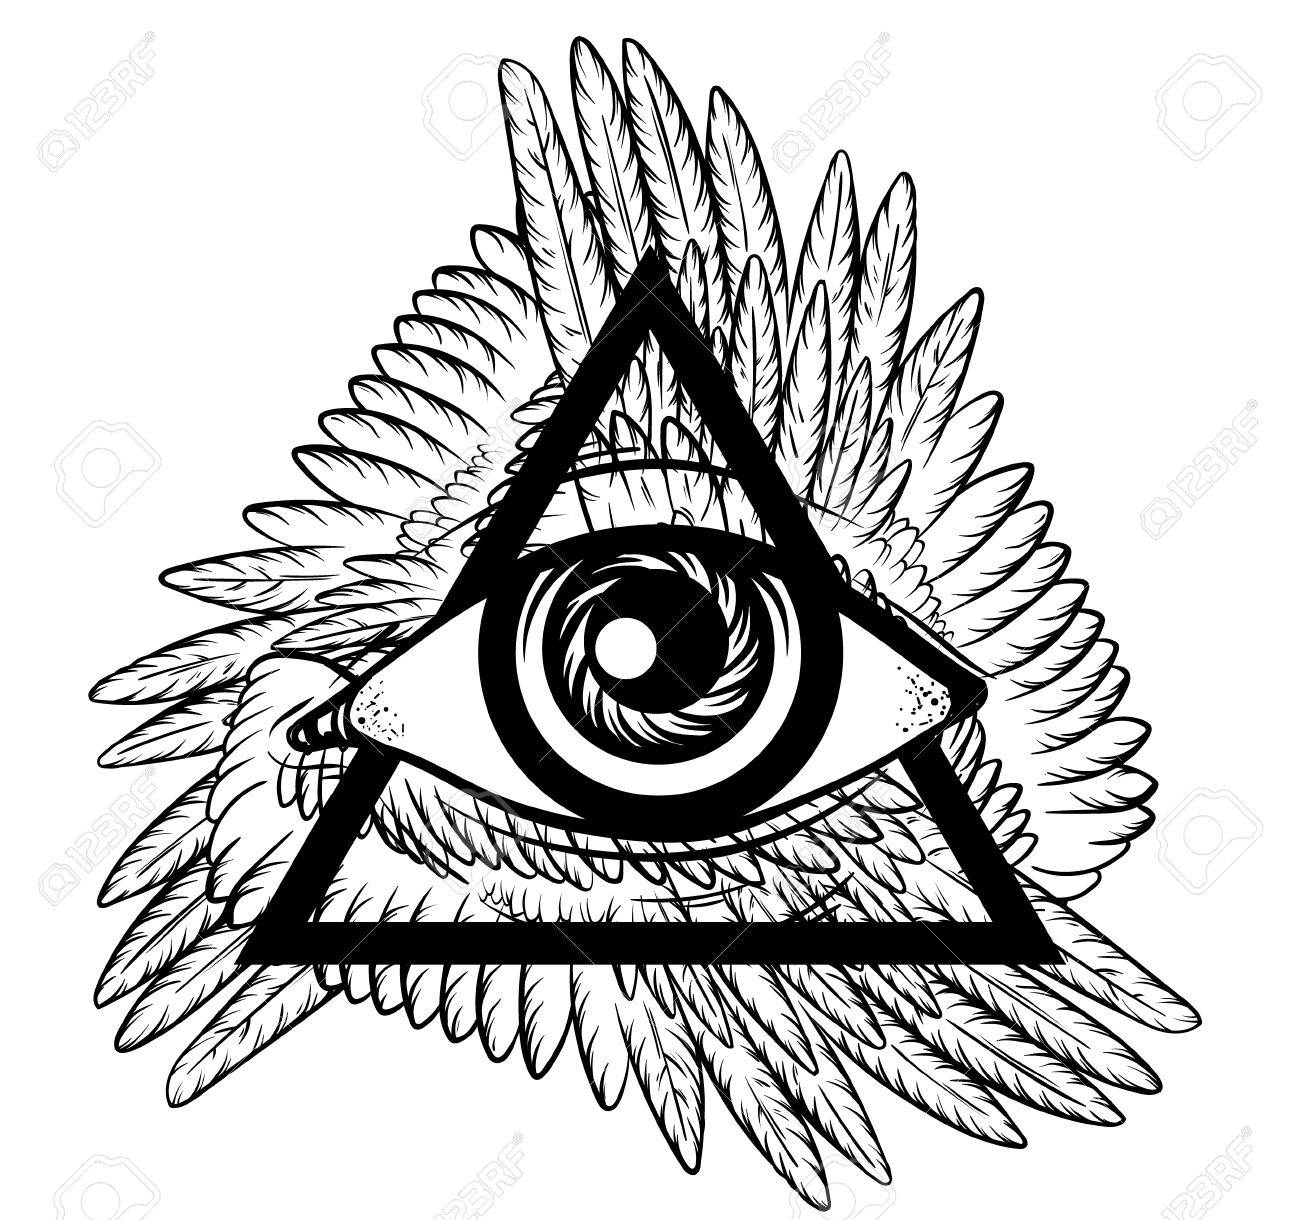 Vector Hand Sketched Illustration All Seeing Eye Pyramid Symbol